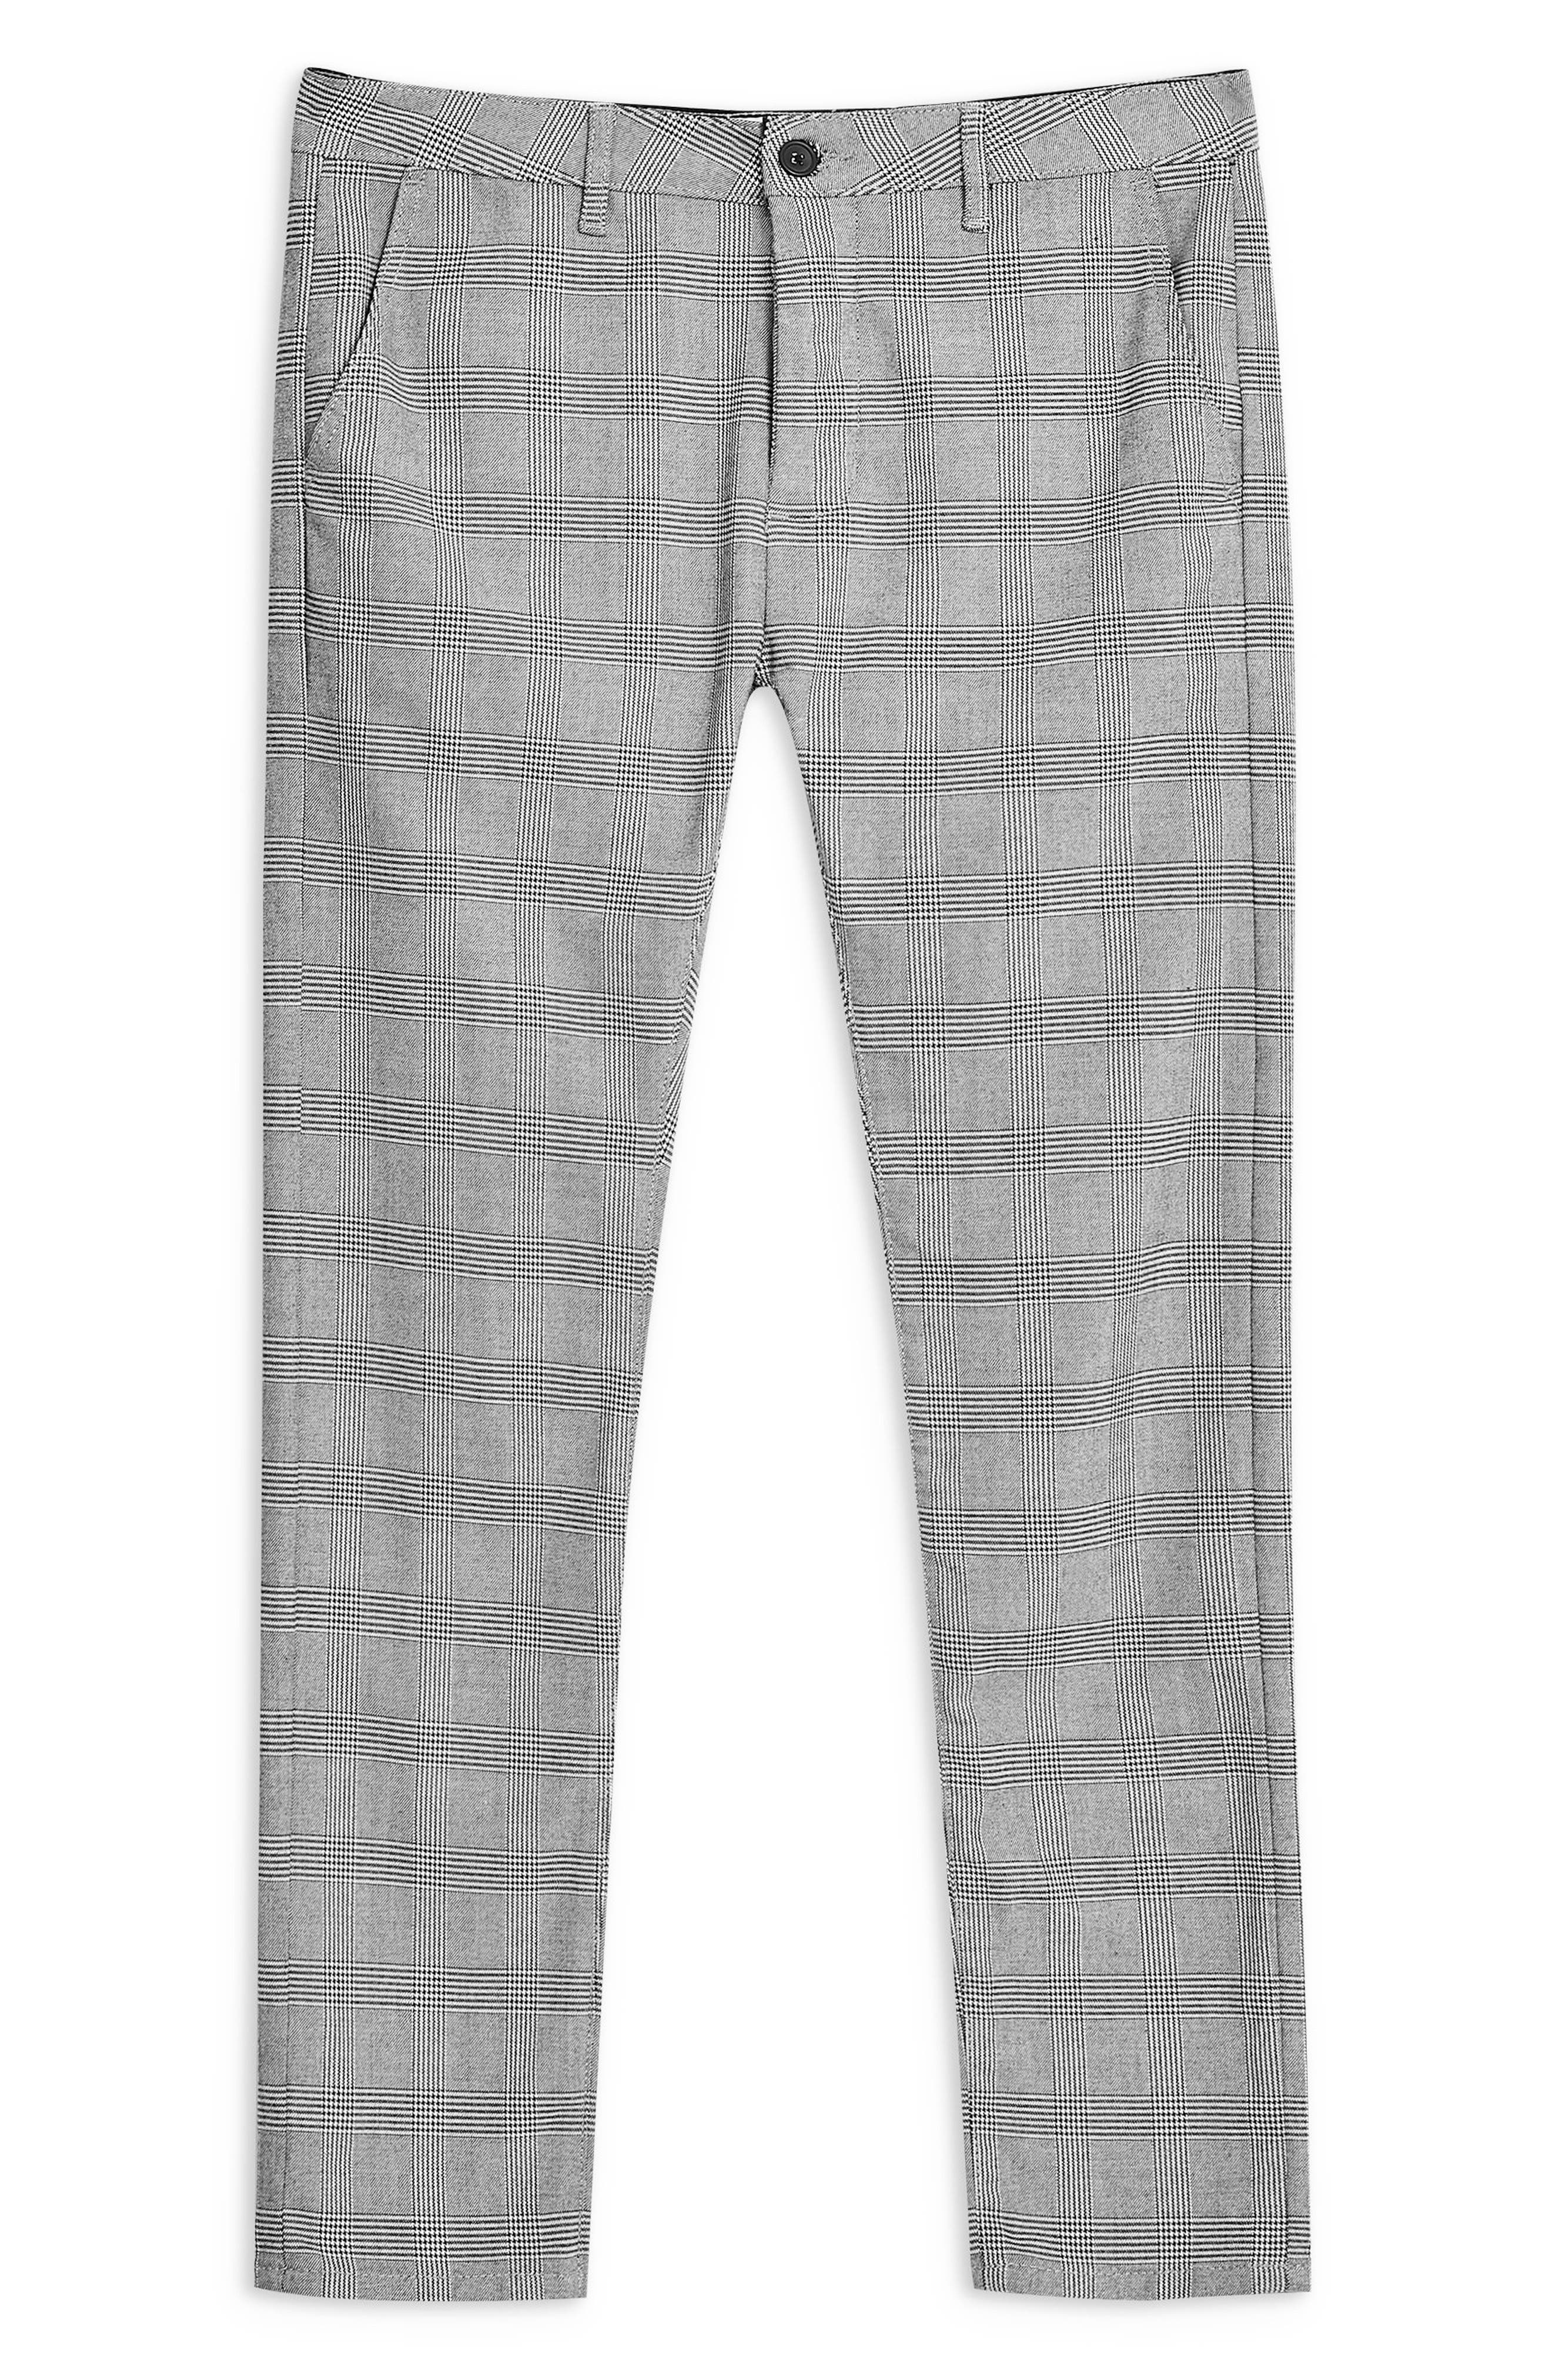 Stretch Skinny Fit Chinos,                             Alternate thumbnail 3, color,                             GREY MULTI